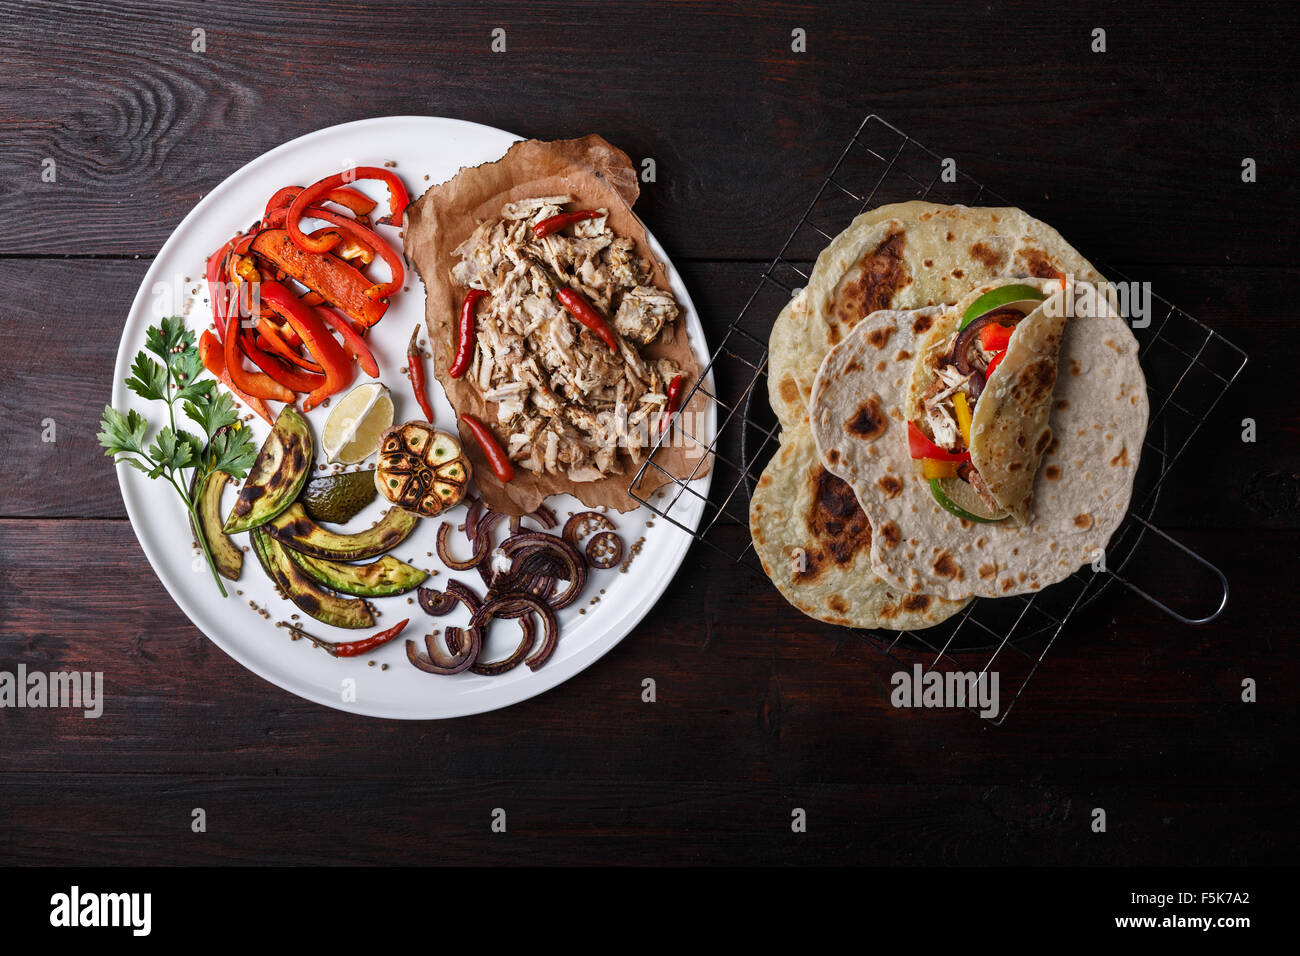 Fajita with pulled pork and bell peppers. Tortillas, grilled avocado, onions  served with meat and vegetables on - Stock Image